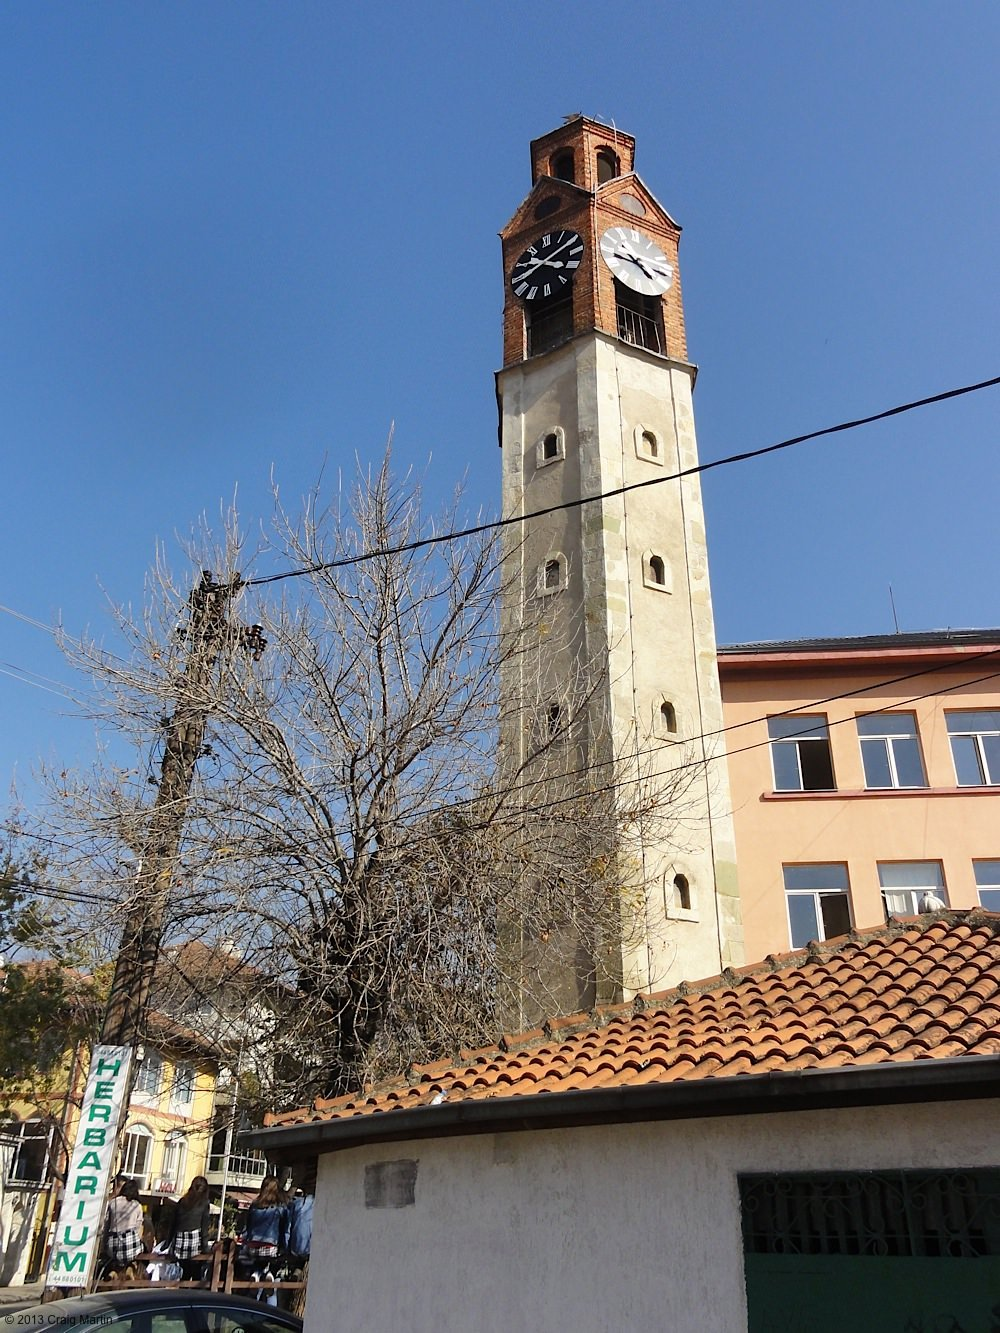 Pristina's iconic clocktower.